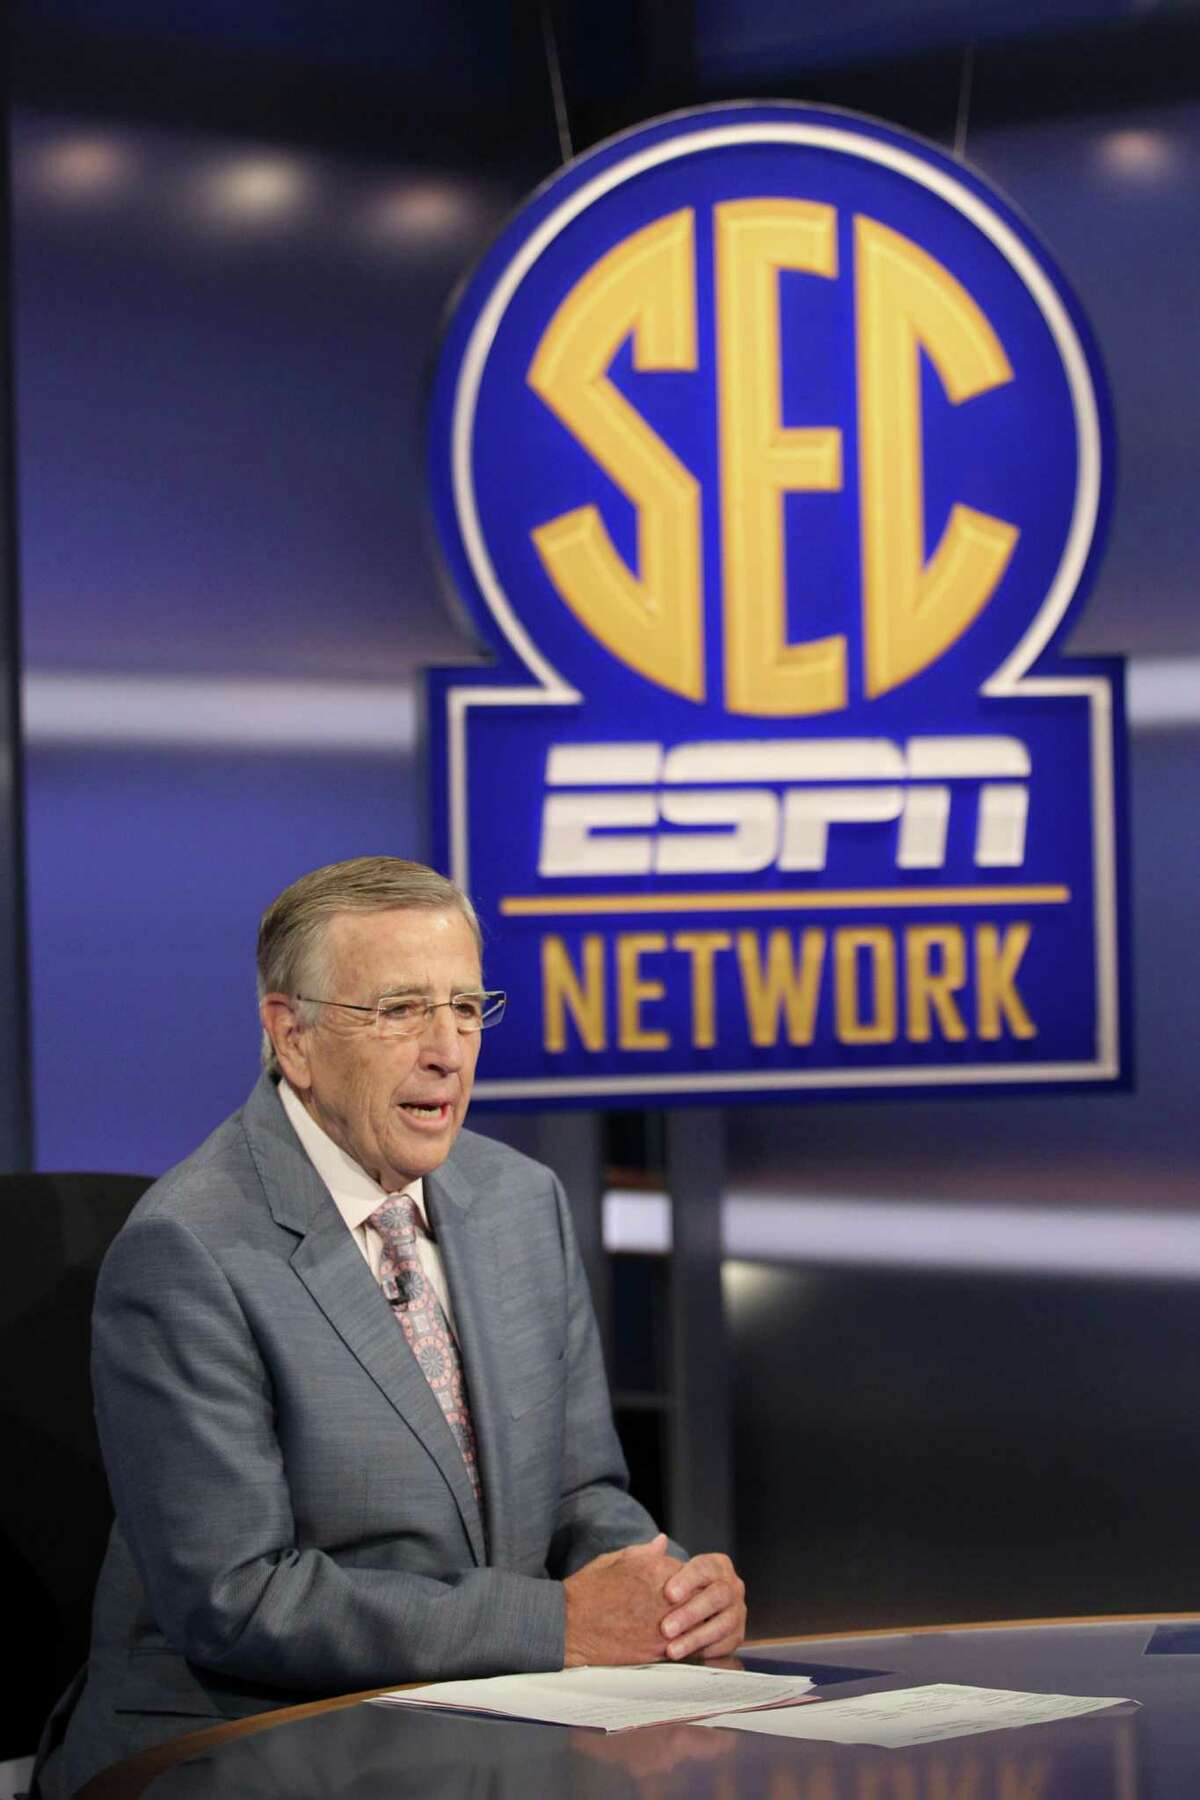 """In this Aug. 14, 2014, photo provided by ESPN, Brent Musburger is shown on the set of """"SEC Now"""" in Charlotte, N.C. Musburger is calling an end to his broadcast career. Millions of Americans experienced sporting events through his folksy narration, most often when he was the lead voice of CBS Sports during the 1980s. Musburger will call his last game for ESPN on Jan. 31, a college basketball contest pitting Kentucky against Georgia. (Travis Bell/ESPN Images via AP)"""